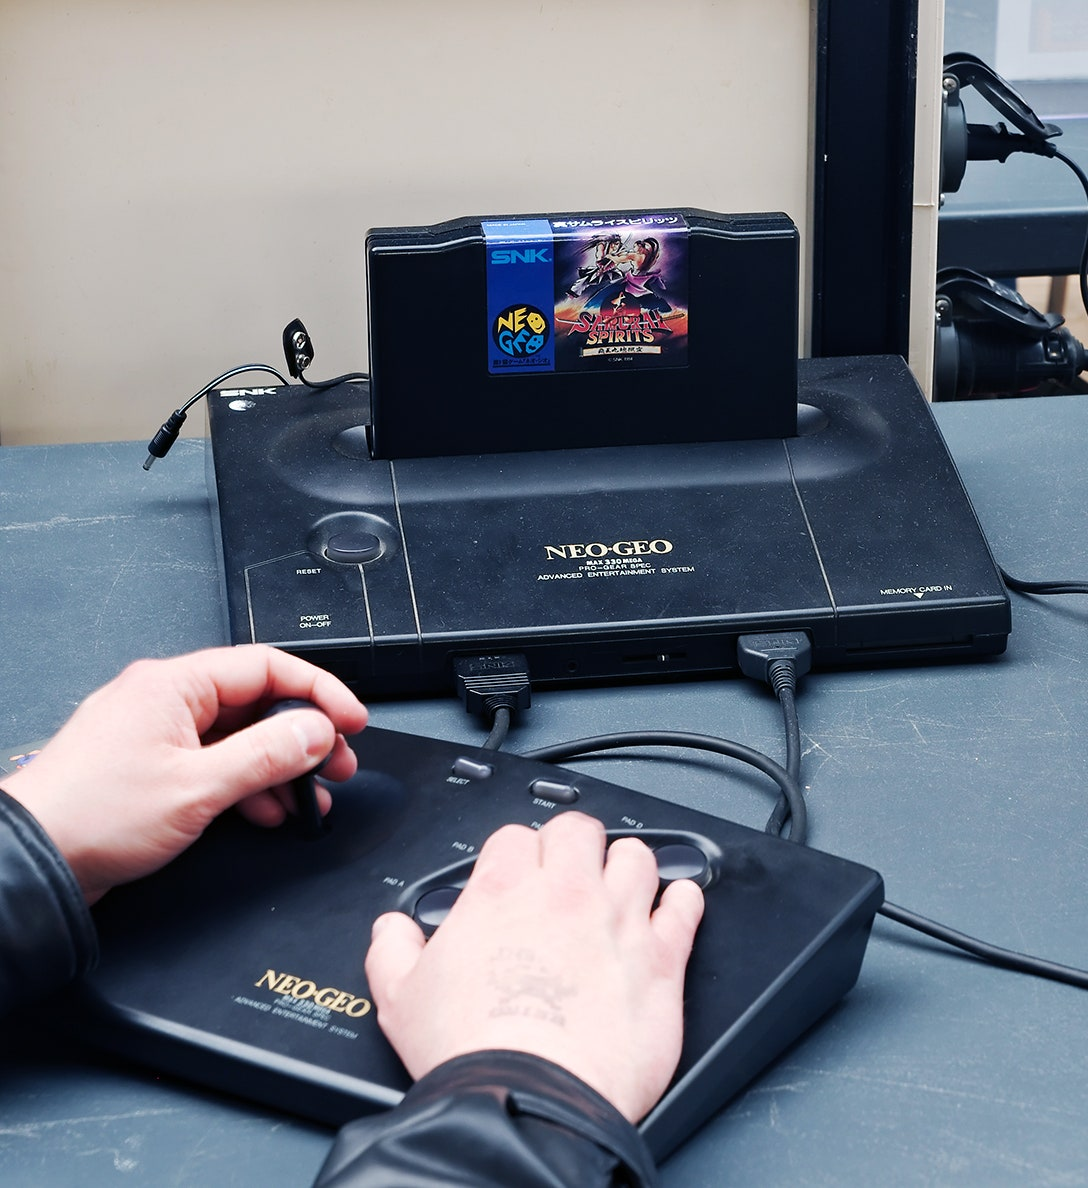 5 Reasons To Purchase A Neo Geo 2